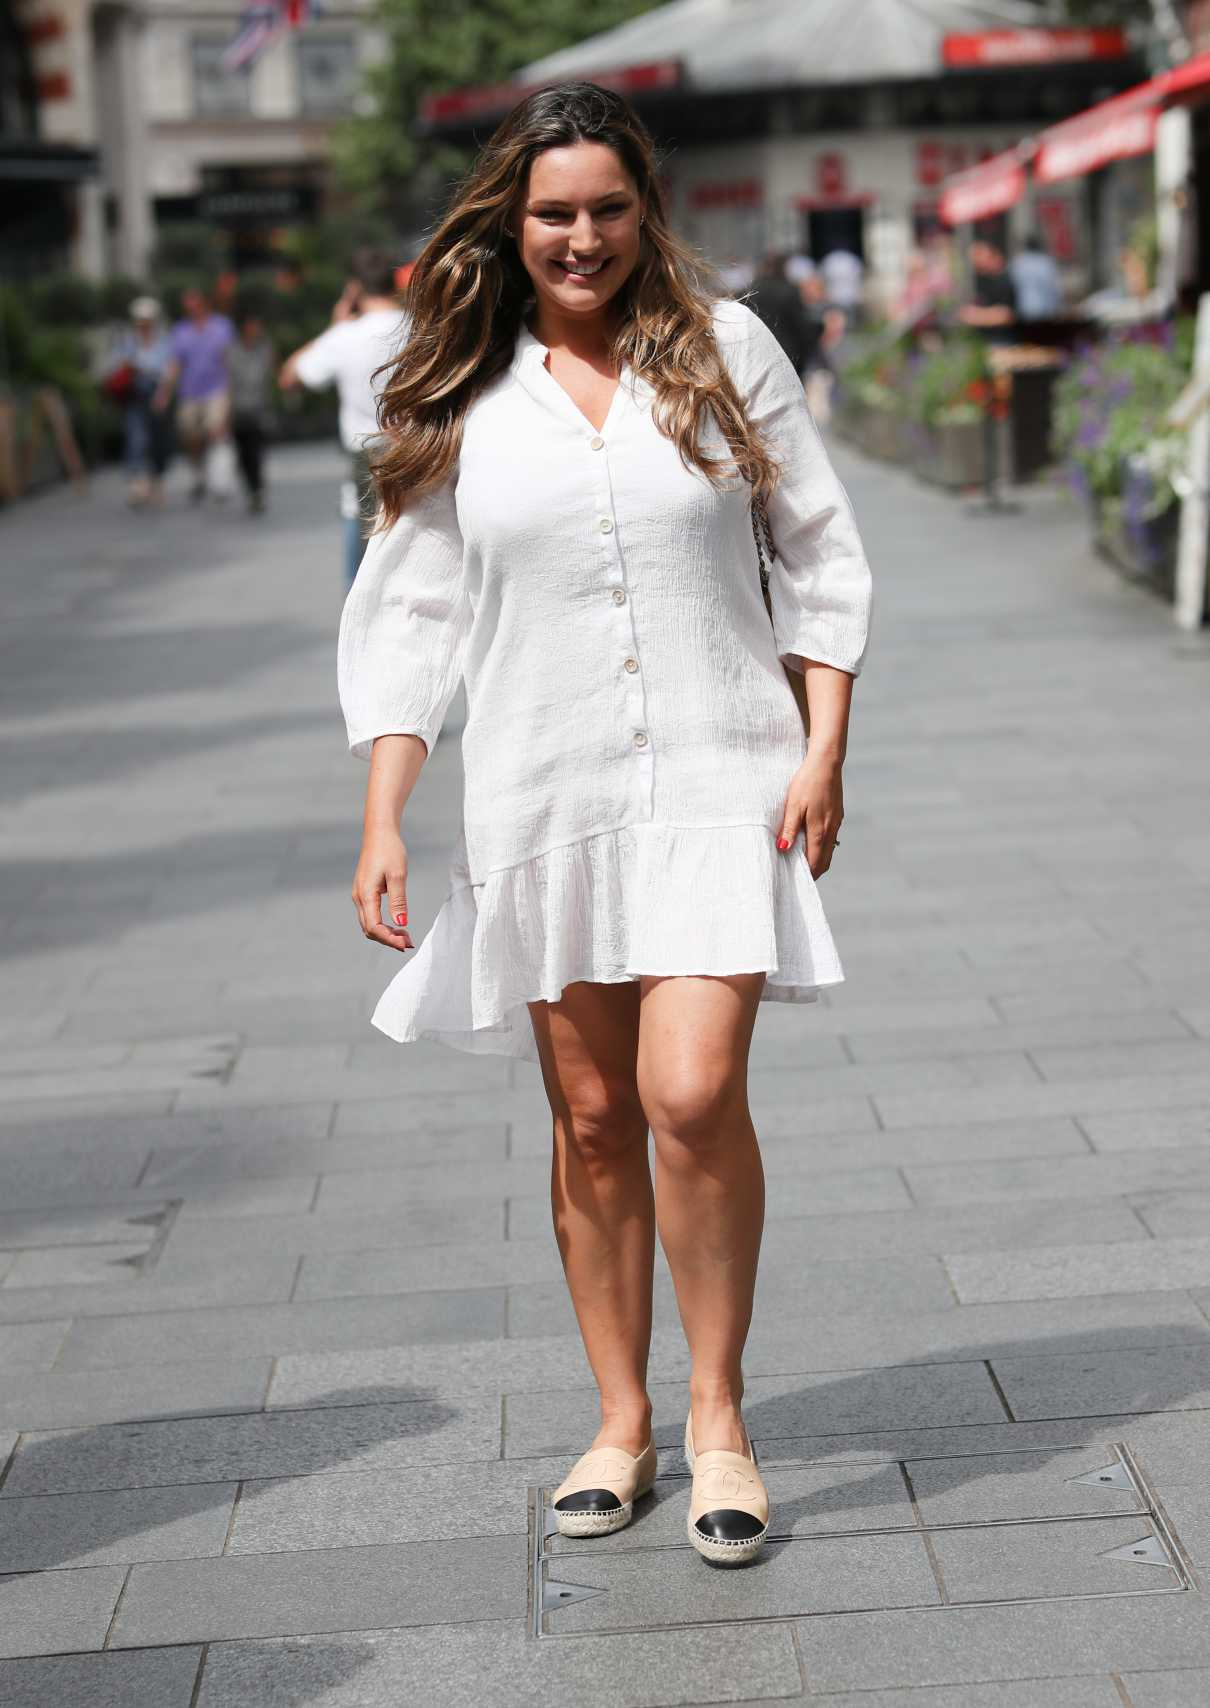 Kelly Brook in a Short White Dress